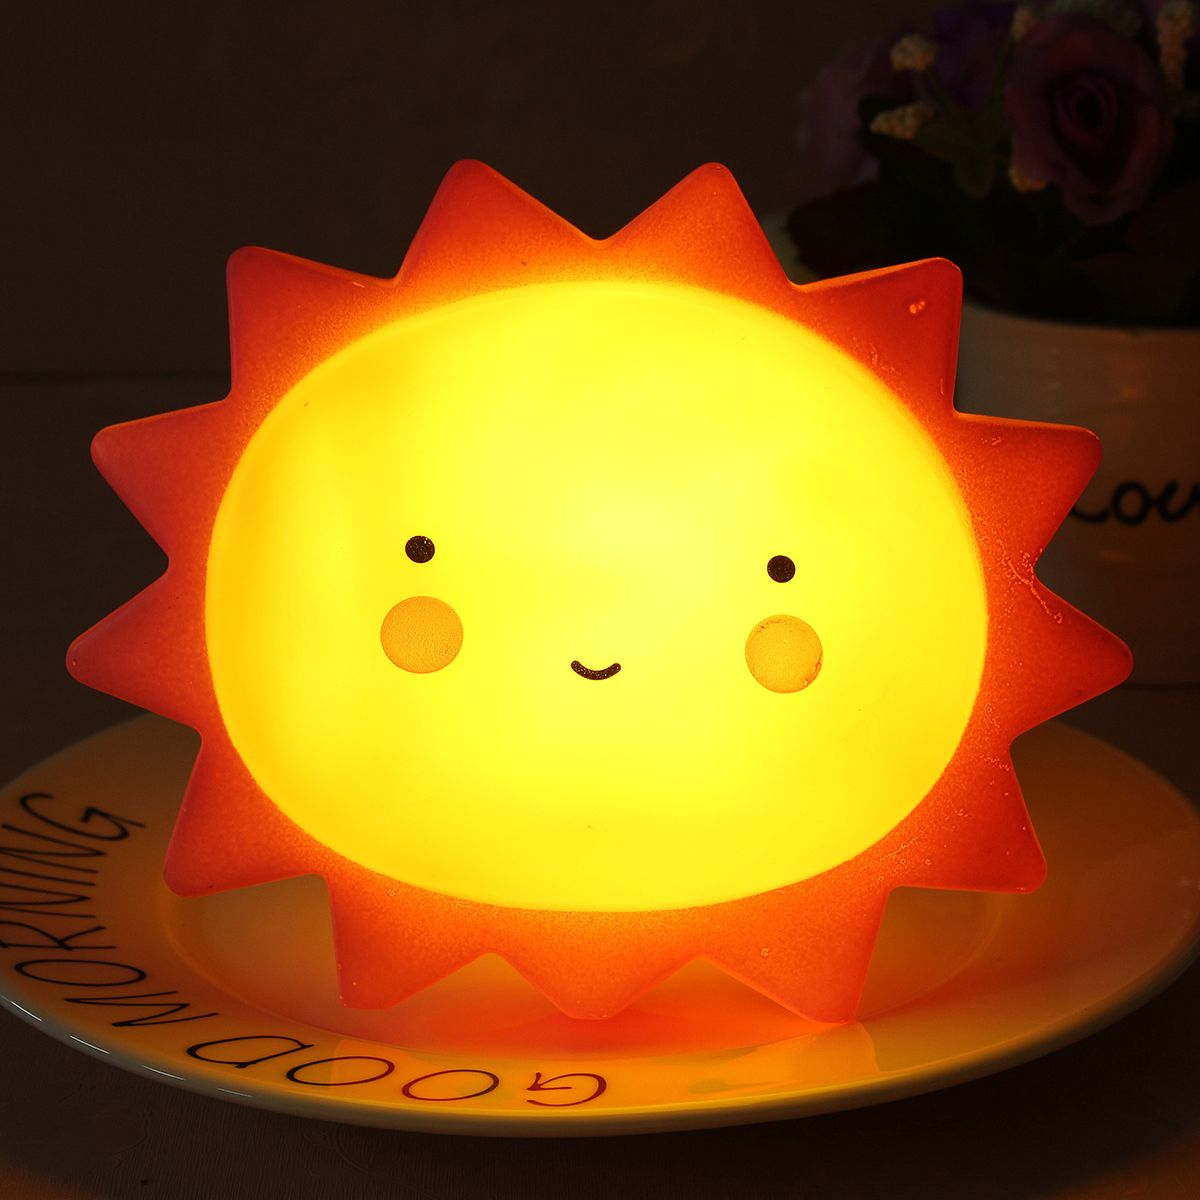 Us 7 99 Sun Shape Children Kid Baby Cute Led Night Light Lamp For Bathroom Home Decor Indoor Lighting From Lights Lighting On Banggood Com Night Light Lamp Led Night Light Lamp